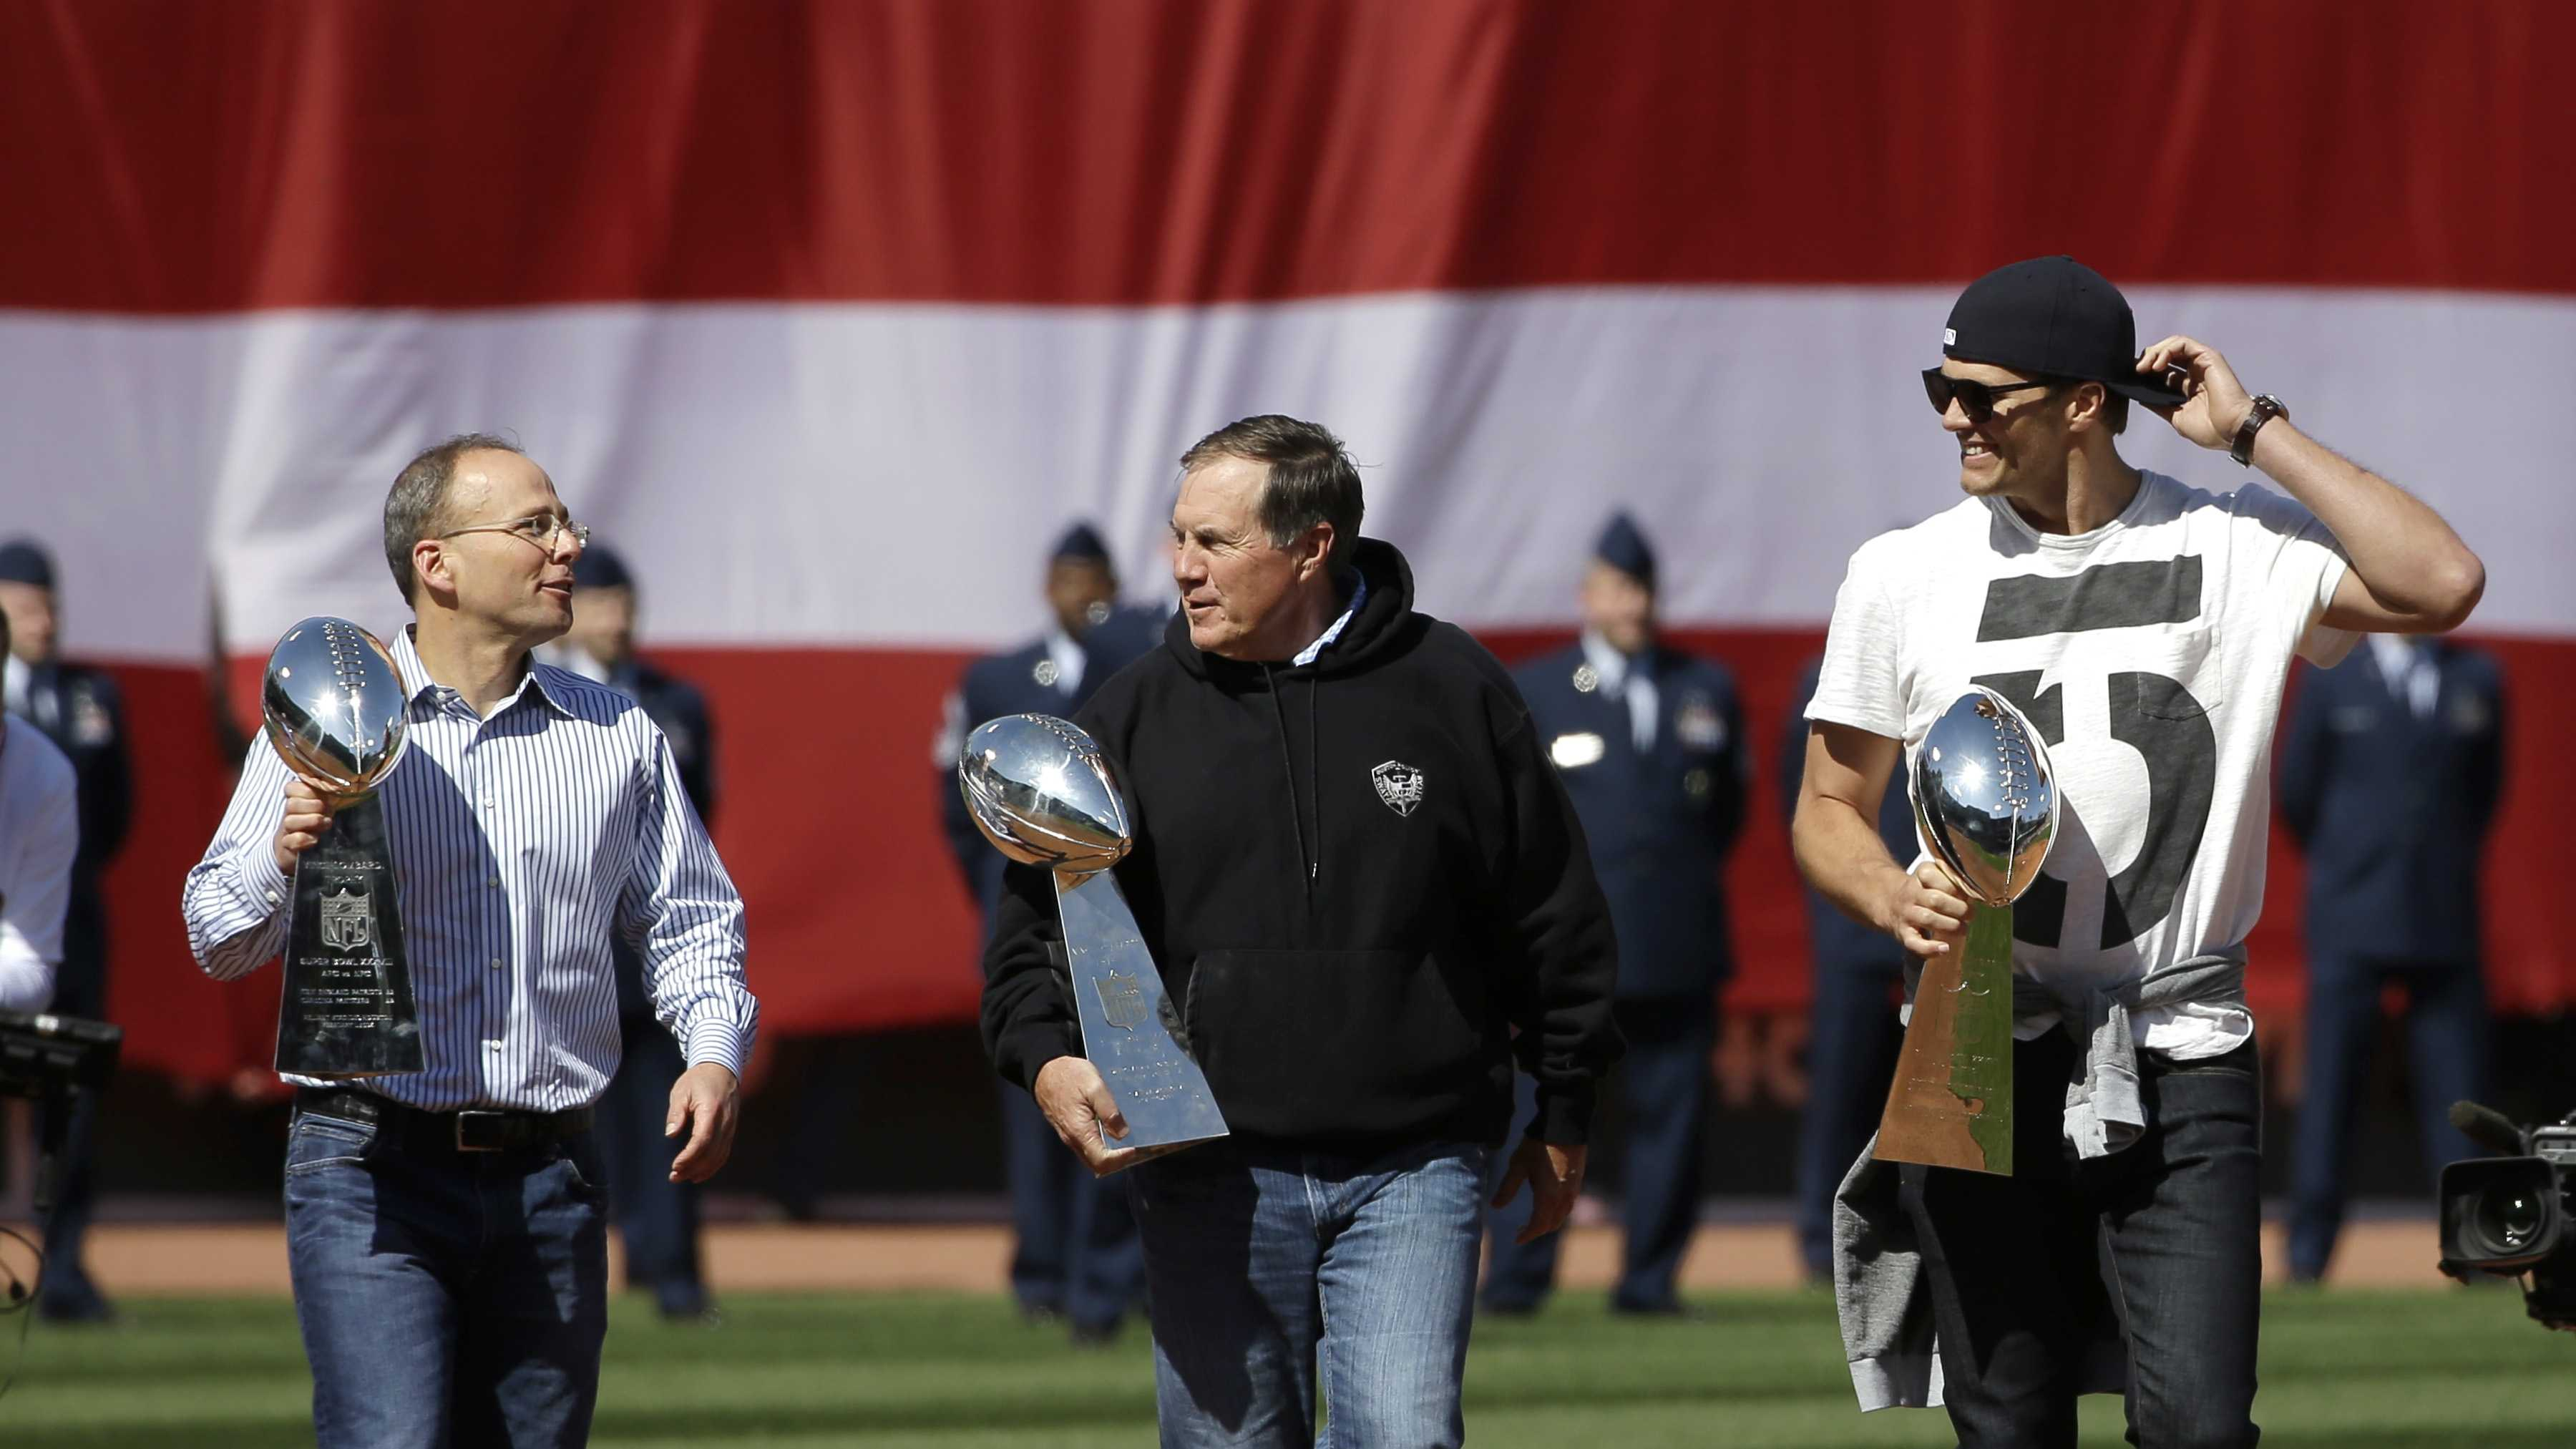 New England Patriots, from the left, President Jonathan Kraft, head coach Bill Belichick, and quarterback Tom Brady, each hold a Super Bowl trophy as they step on to the field at Fenway Park before a baseball game between the Boston Red Sox and the Washington Nationals, Monday, April 13, 2015, in Boston.